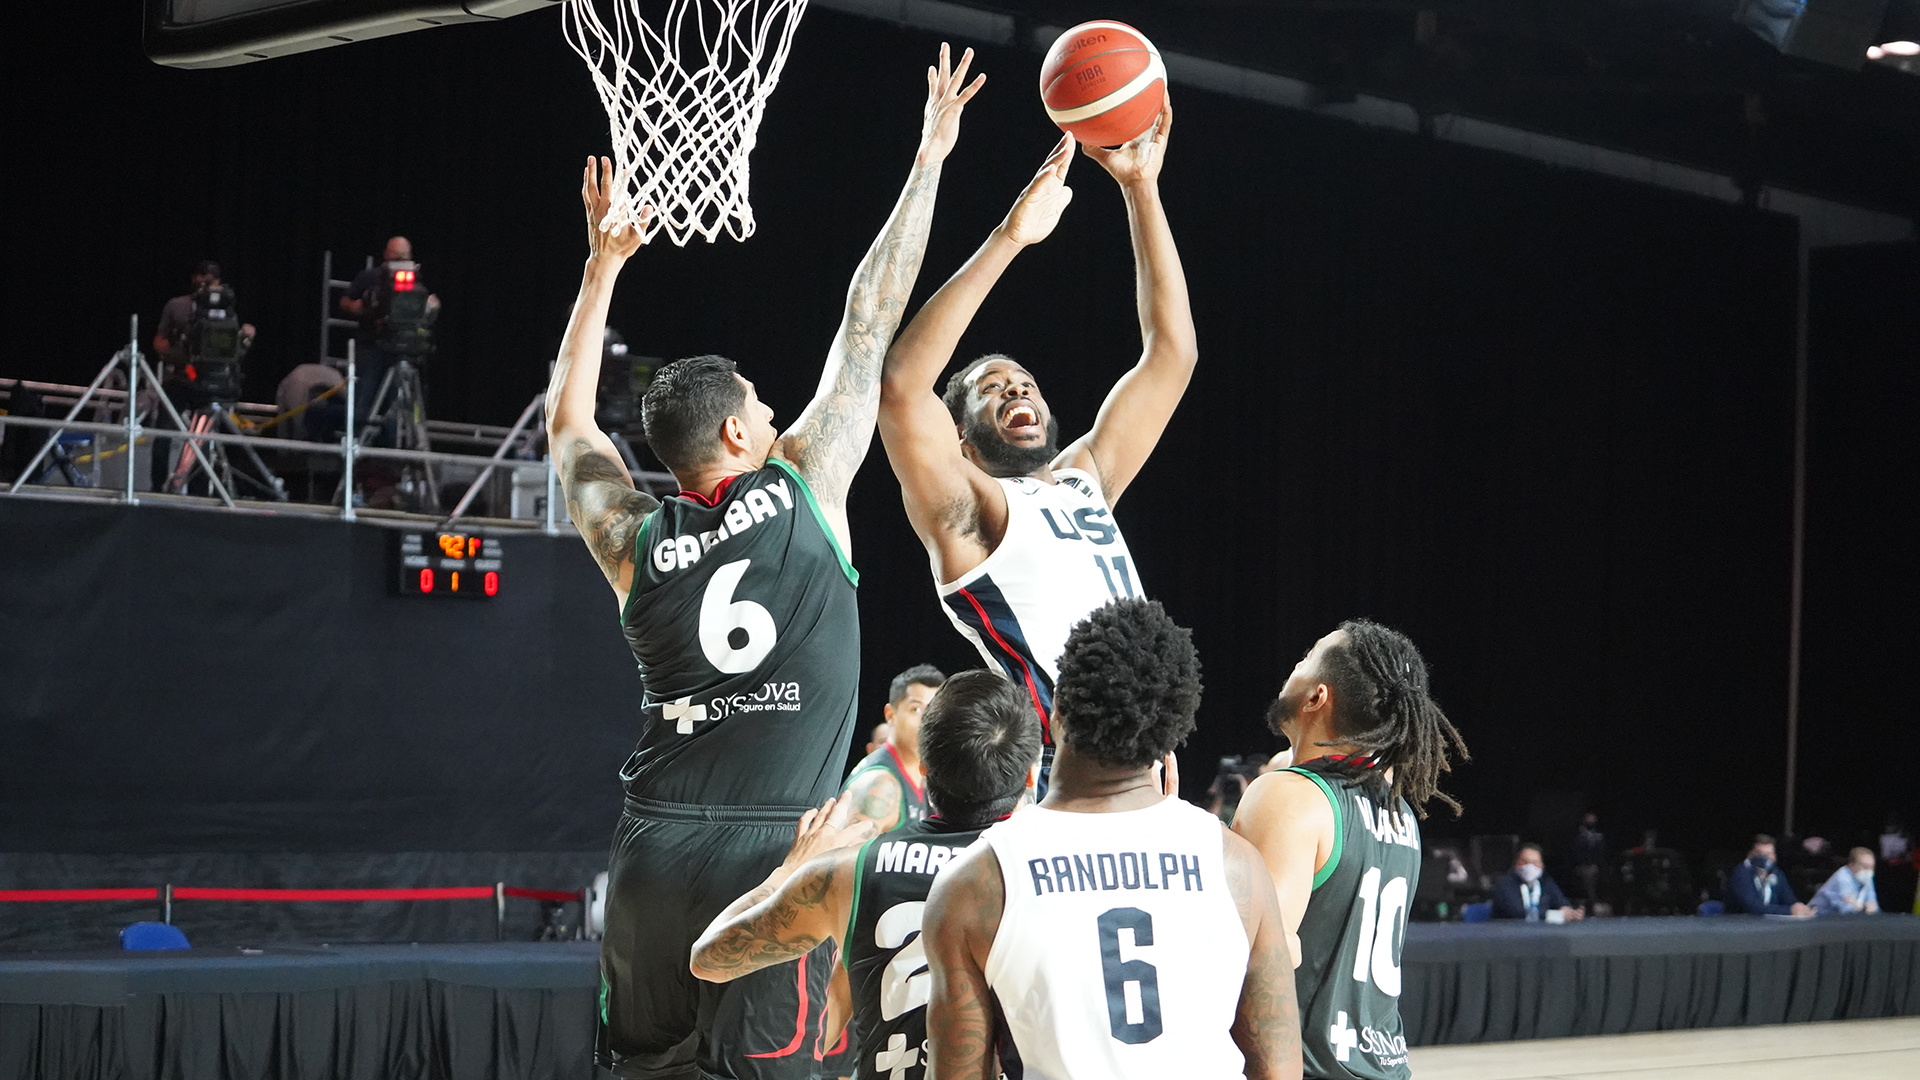 USA Basketball beats Mexico to clinch AmeriCup berth